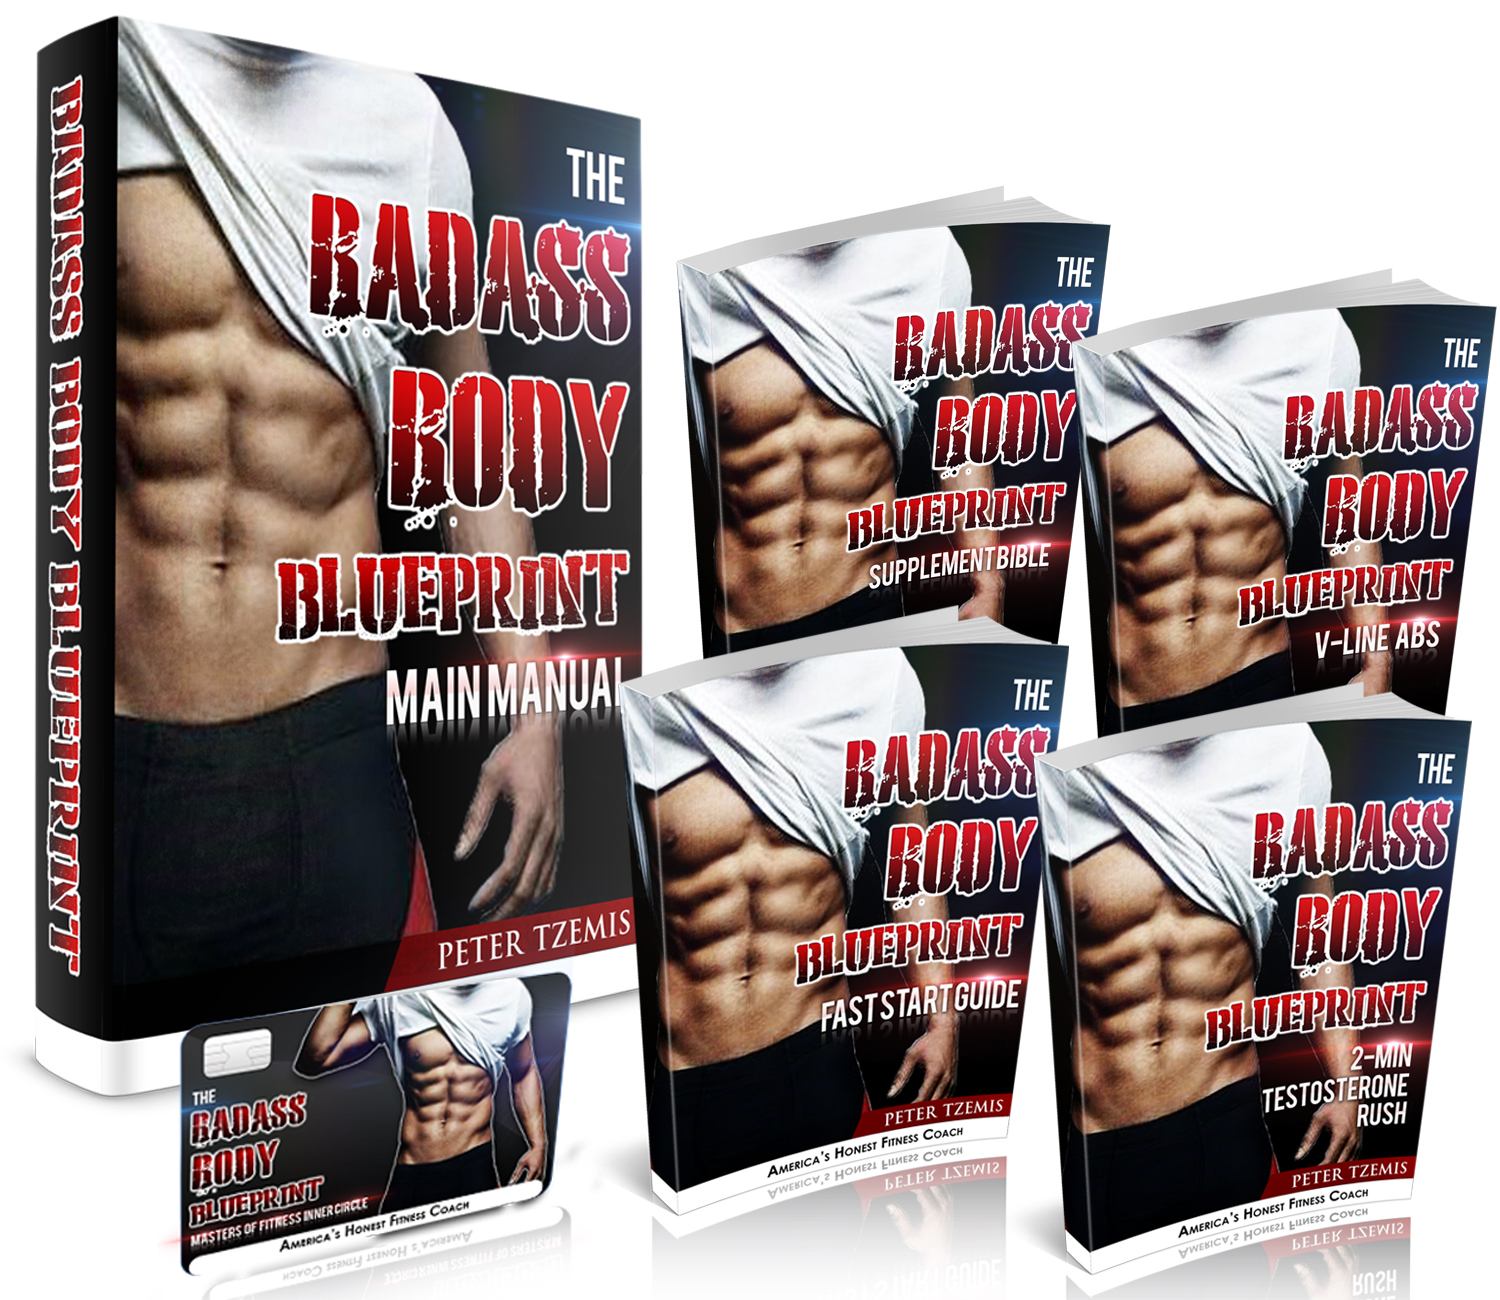 Badass body blueprint the badass body blueprint malvernweather